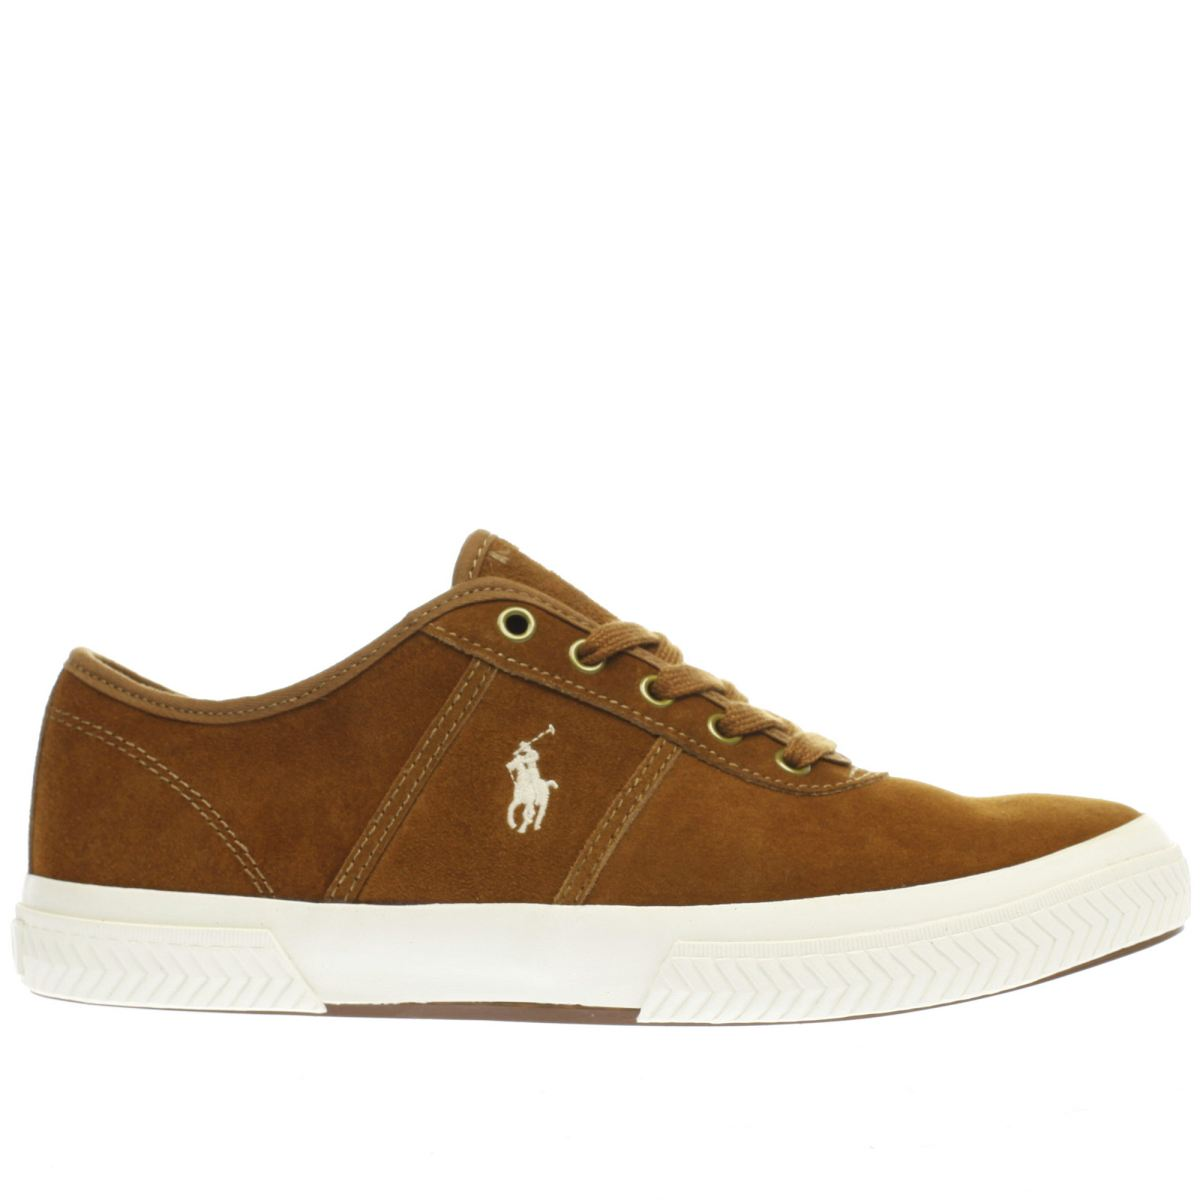 polo ralph lauren tan tyrian shoes